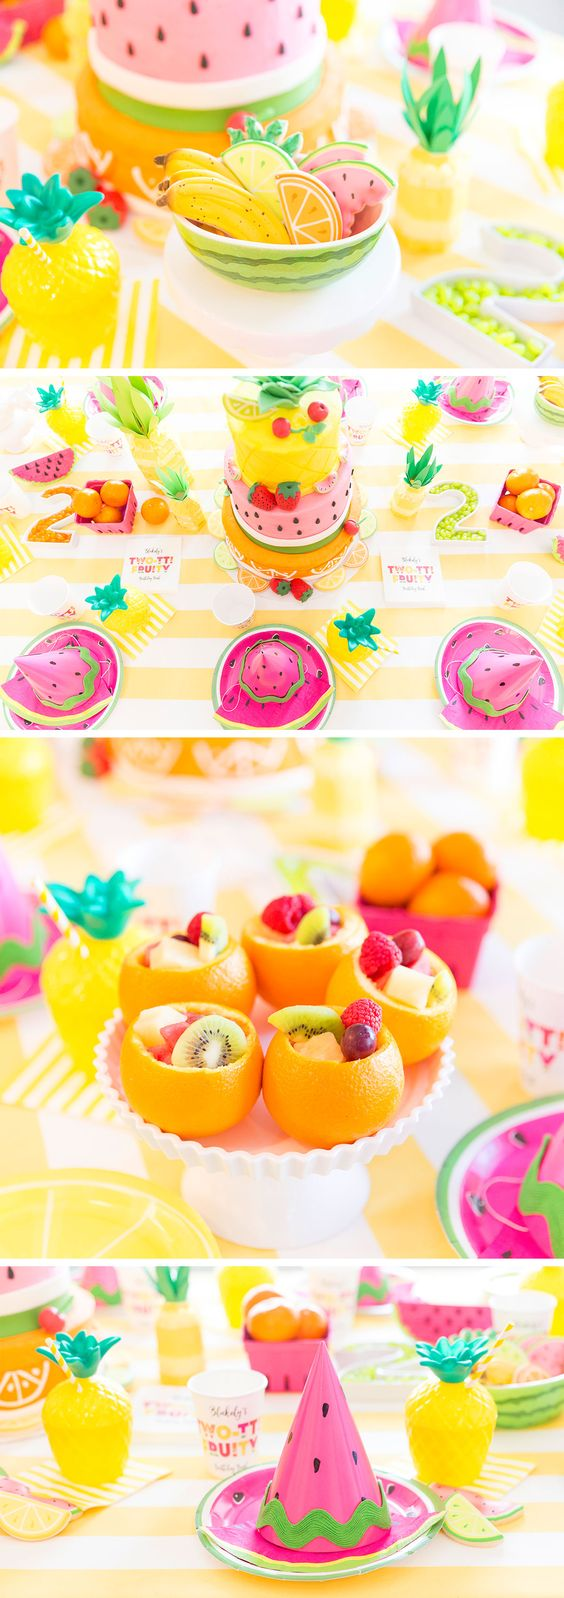 tropical party ideas inspiration styling decorating decorations event flamingo pineapple monstera fruit sail and swan blog